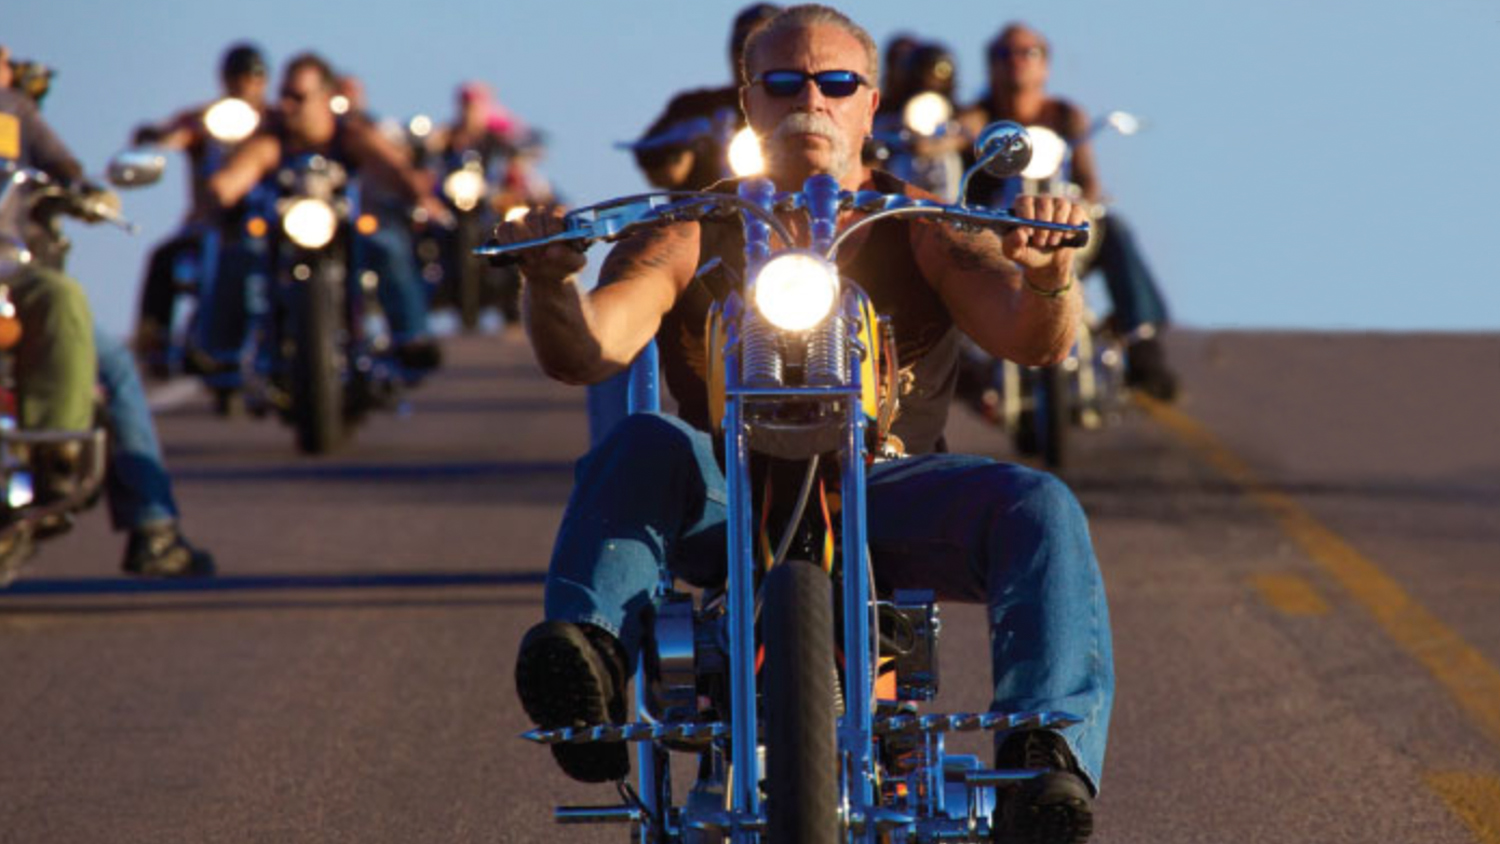 7 Things You Didn't Know About Paul Teutul Sr